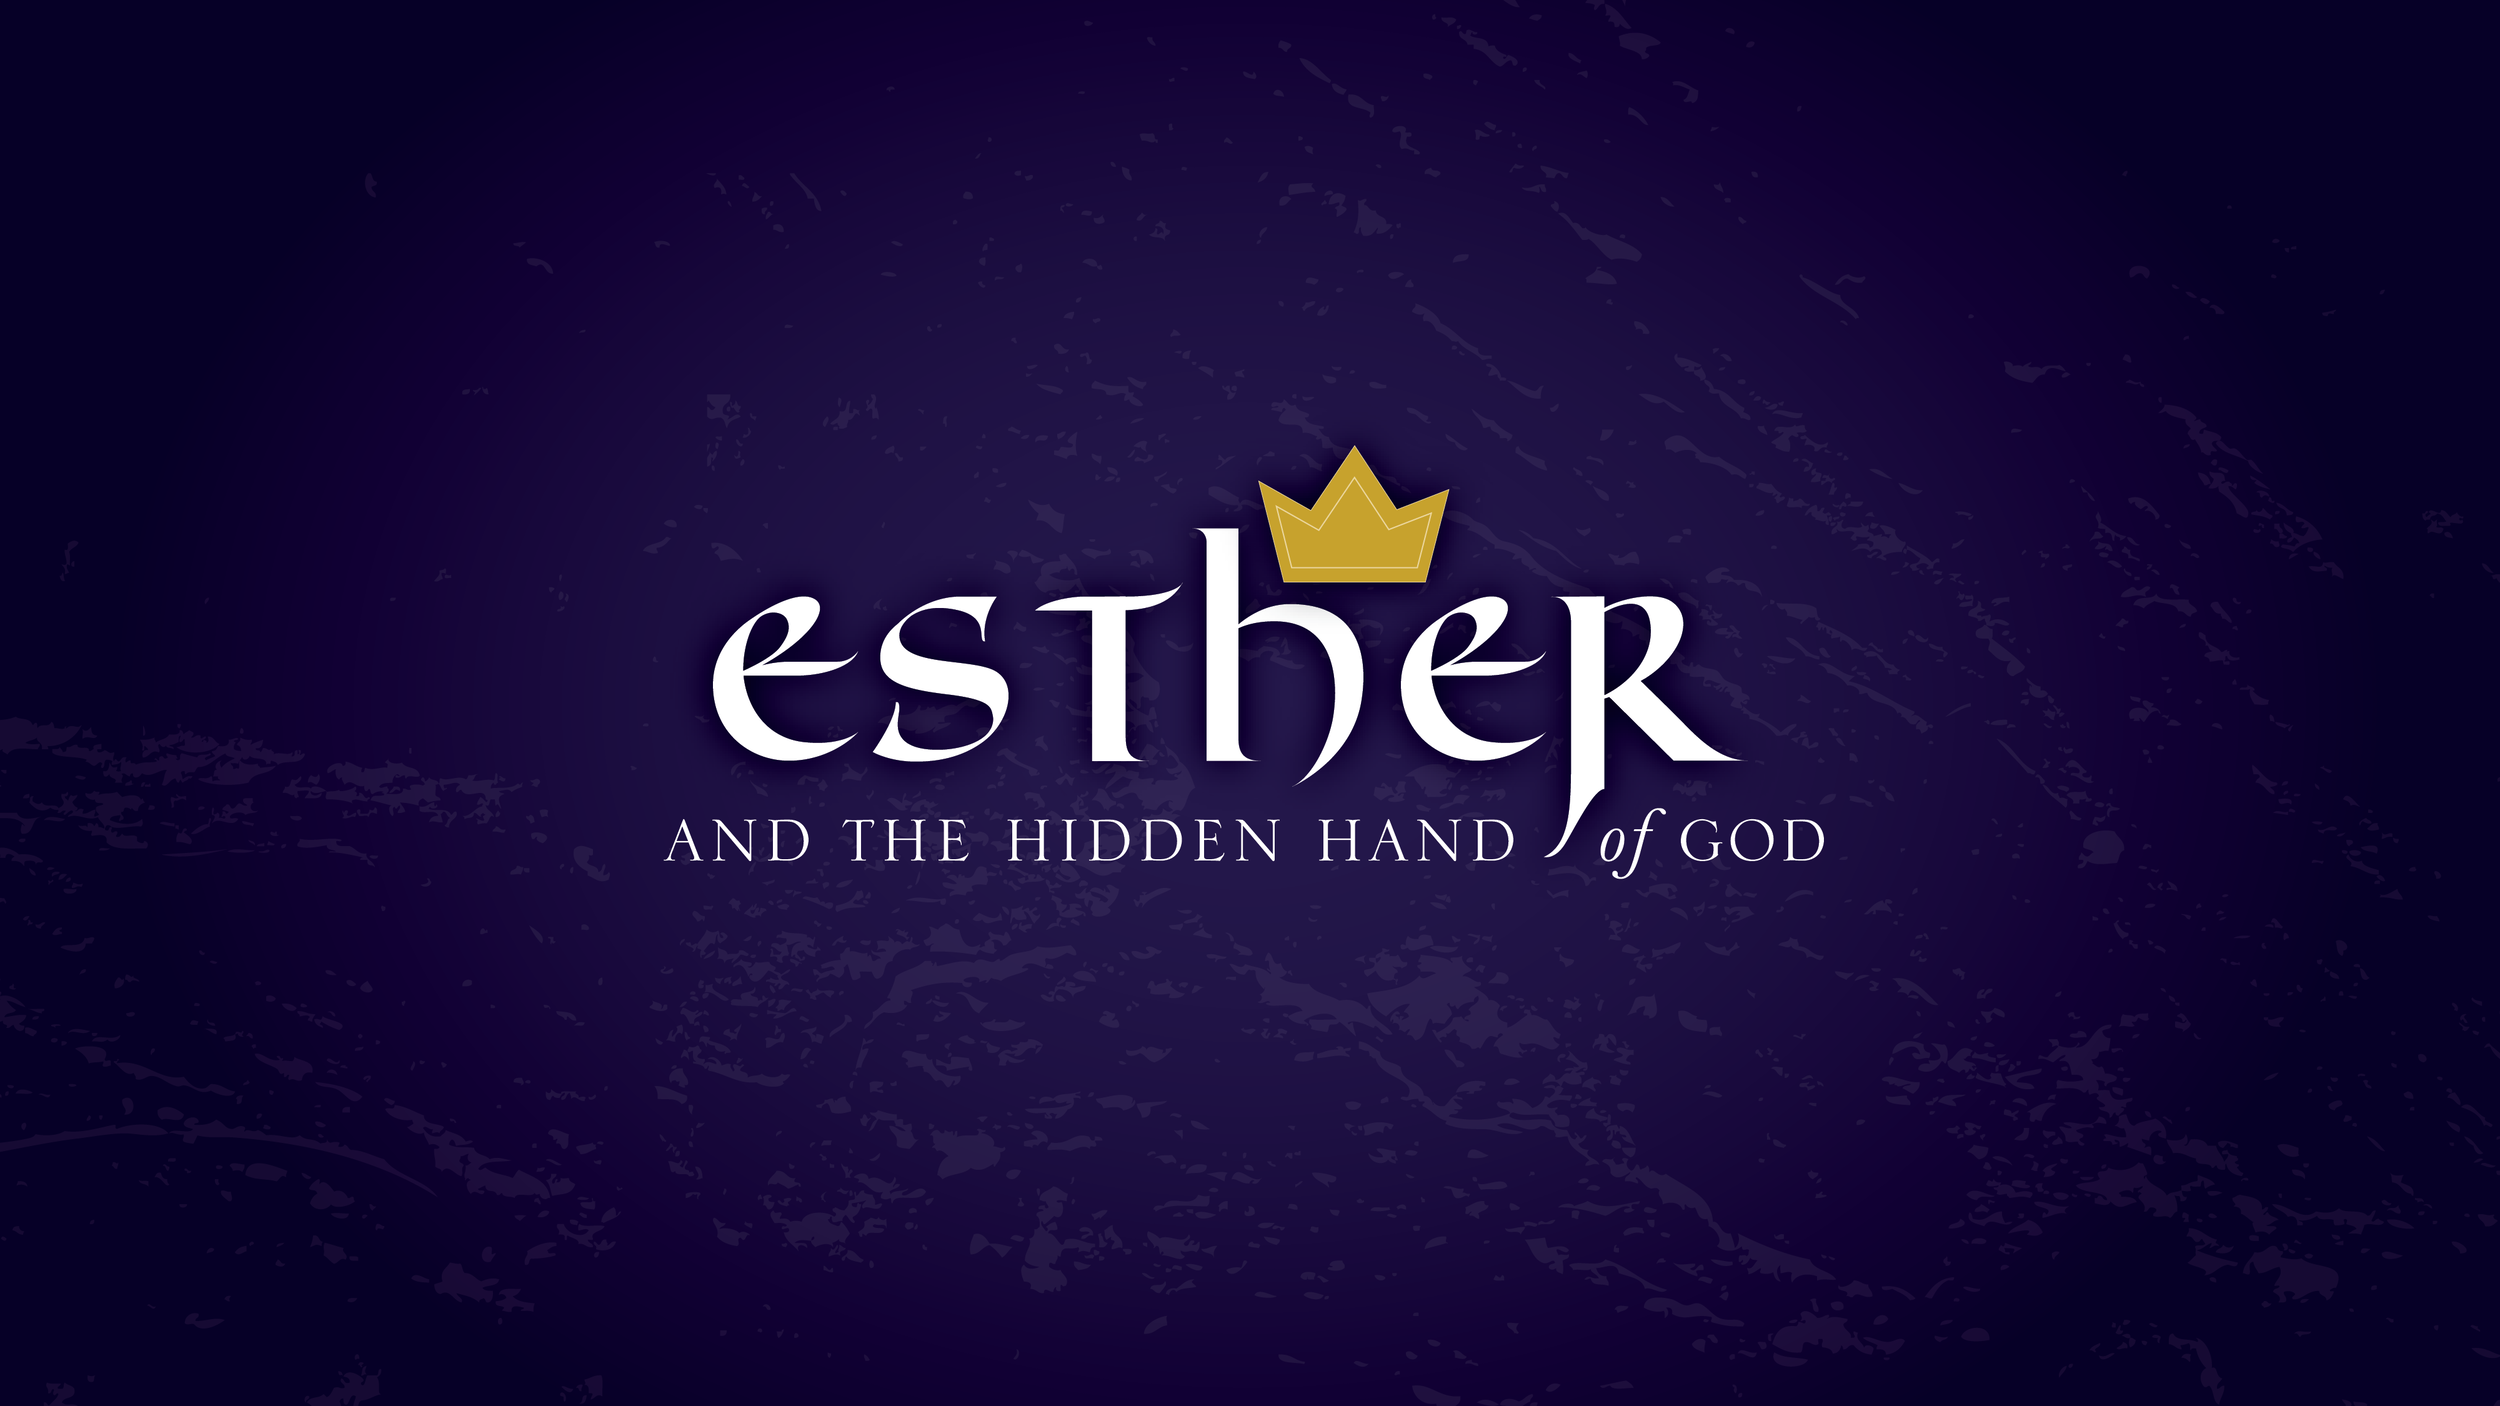 Esther_Title 16-9.png